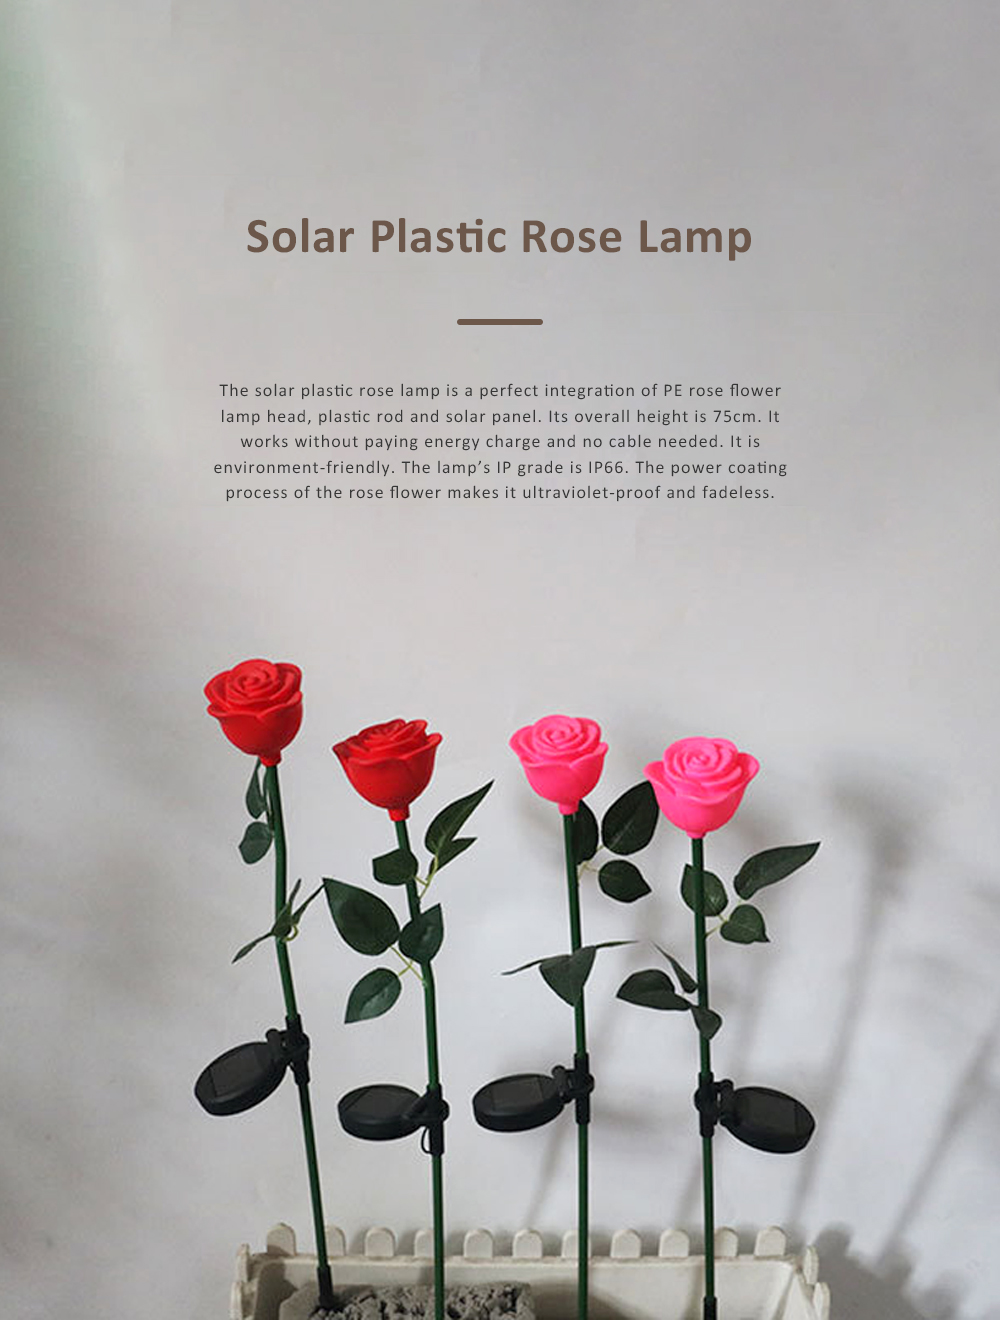 LED Solar Landscape Light for Outdoors Courtyard Gardens Waterproof Plastic Rose Flower Pattern Lamps Solar Rose Pin Lamp 0